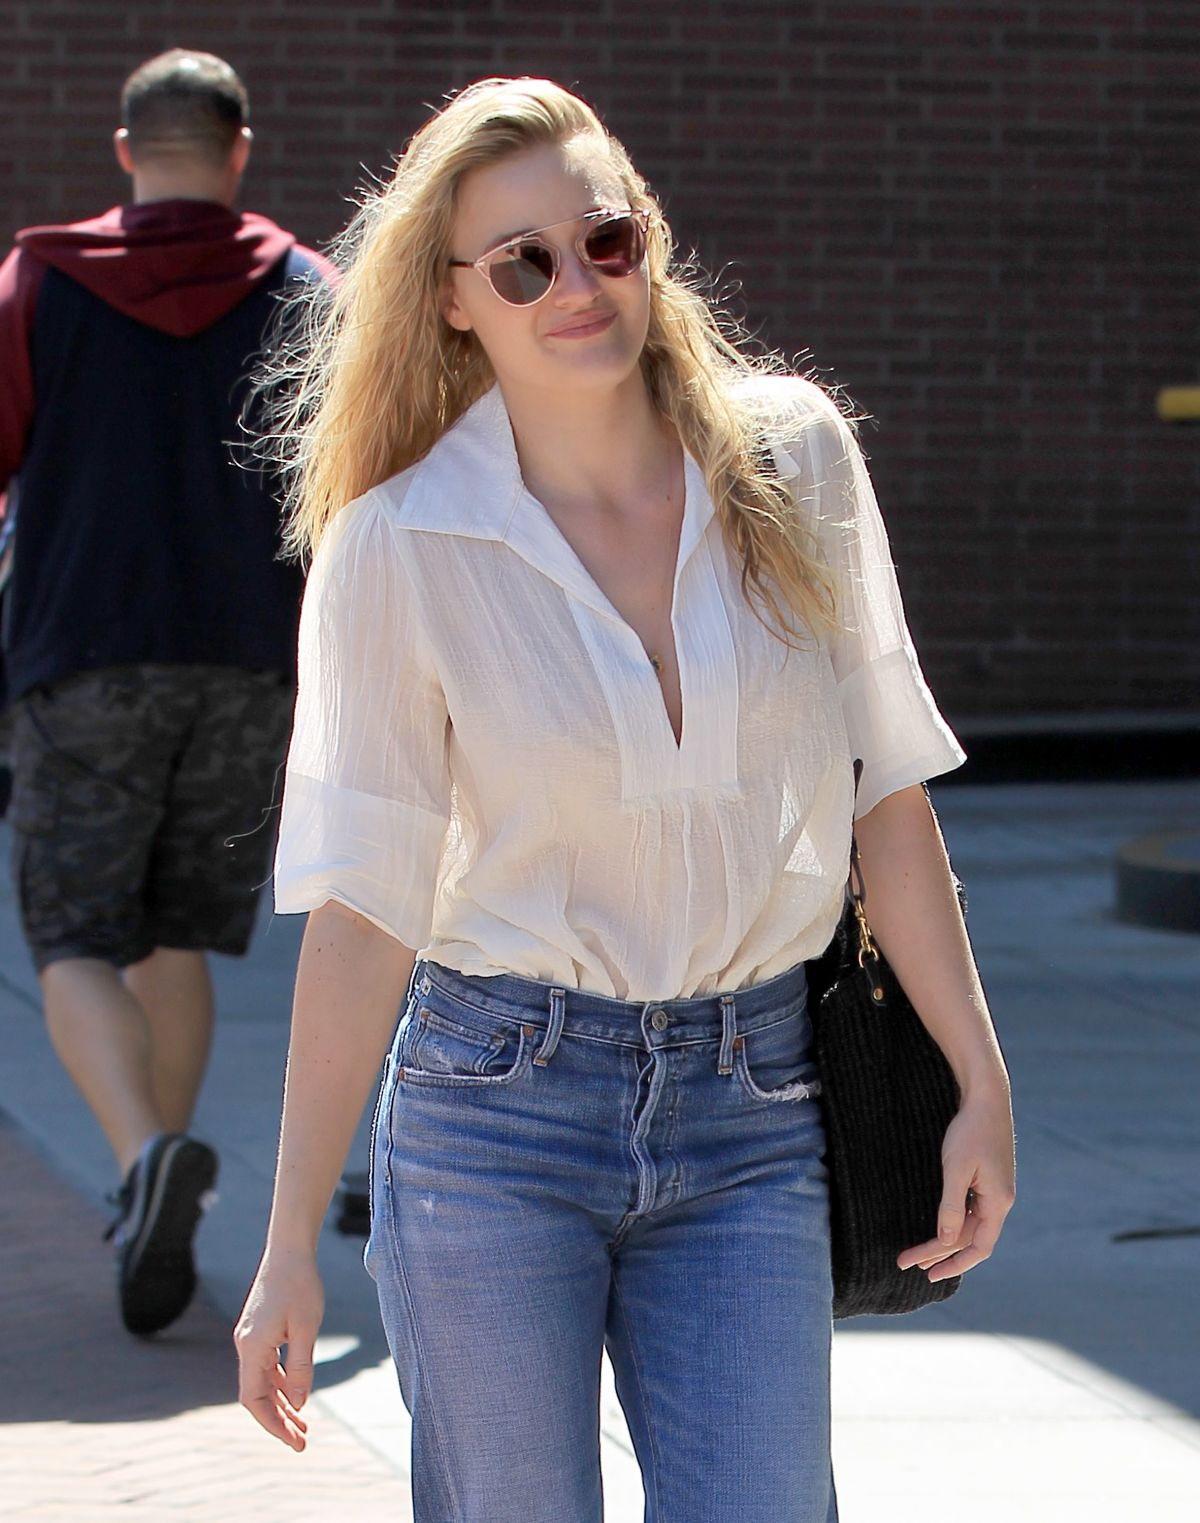 AJ MICHALKA in Jeans Out Shopping in Beverly Hills 03/24/2017